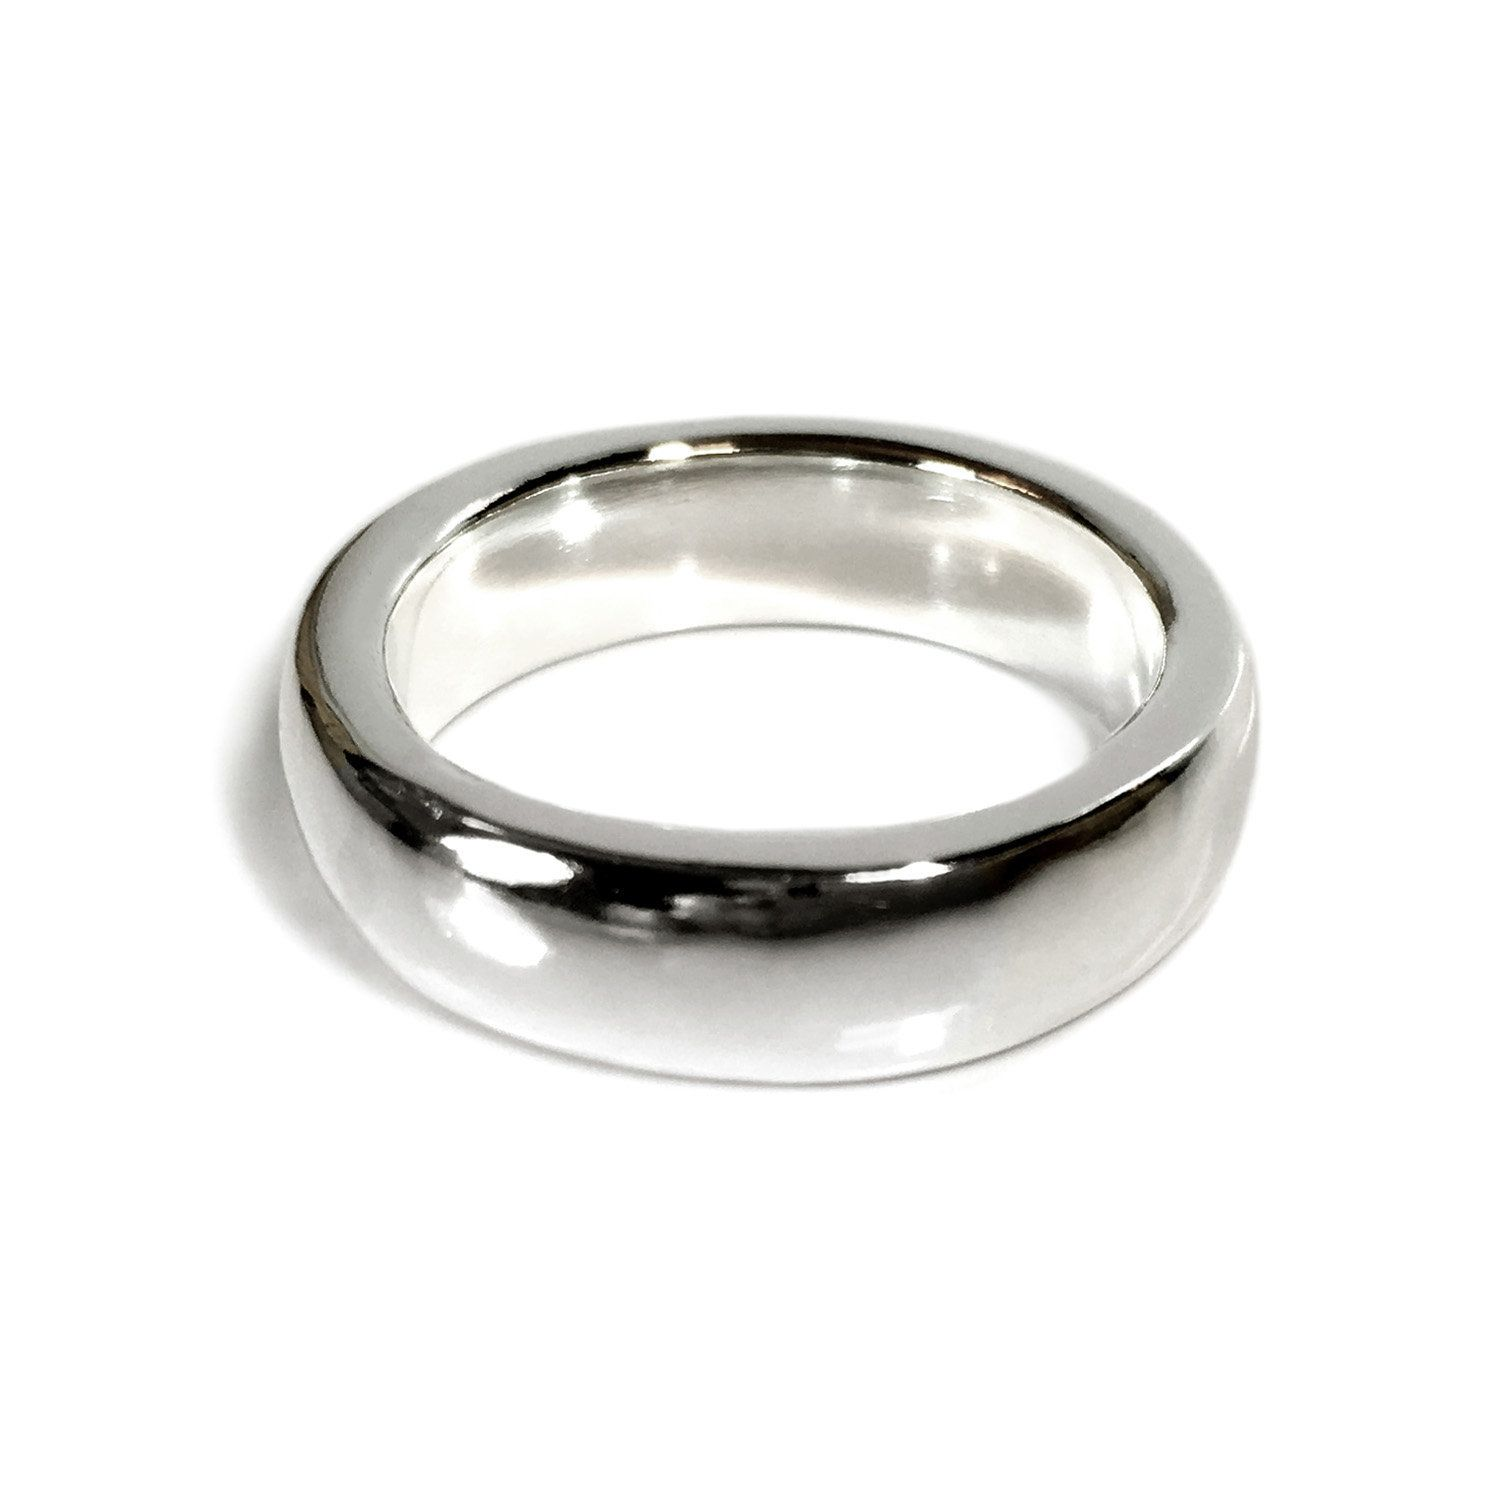 Solide Argent Sterling 925 The Turning CERTER Men/'s Ring Band Taille 7 To 9